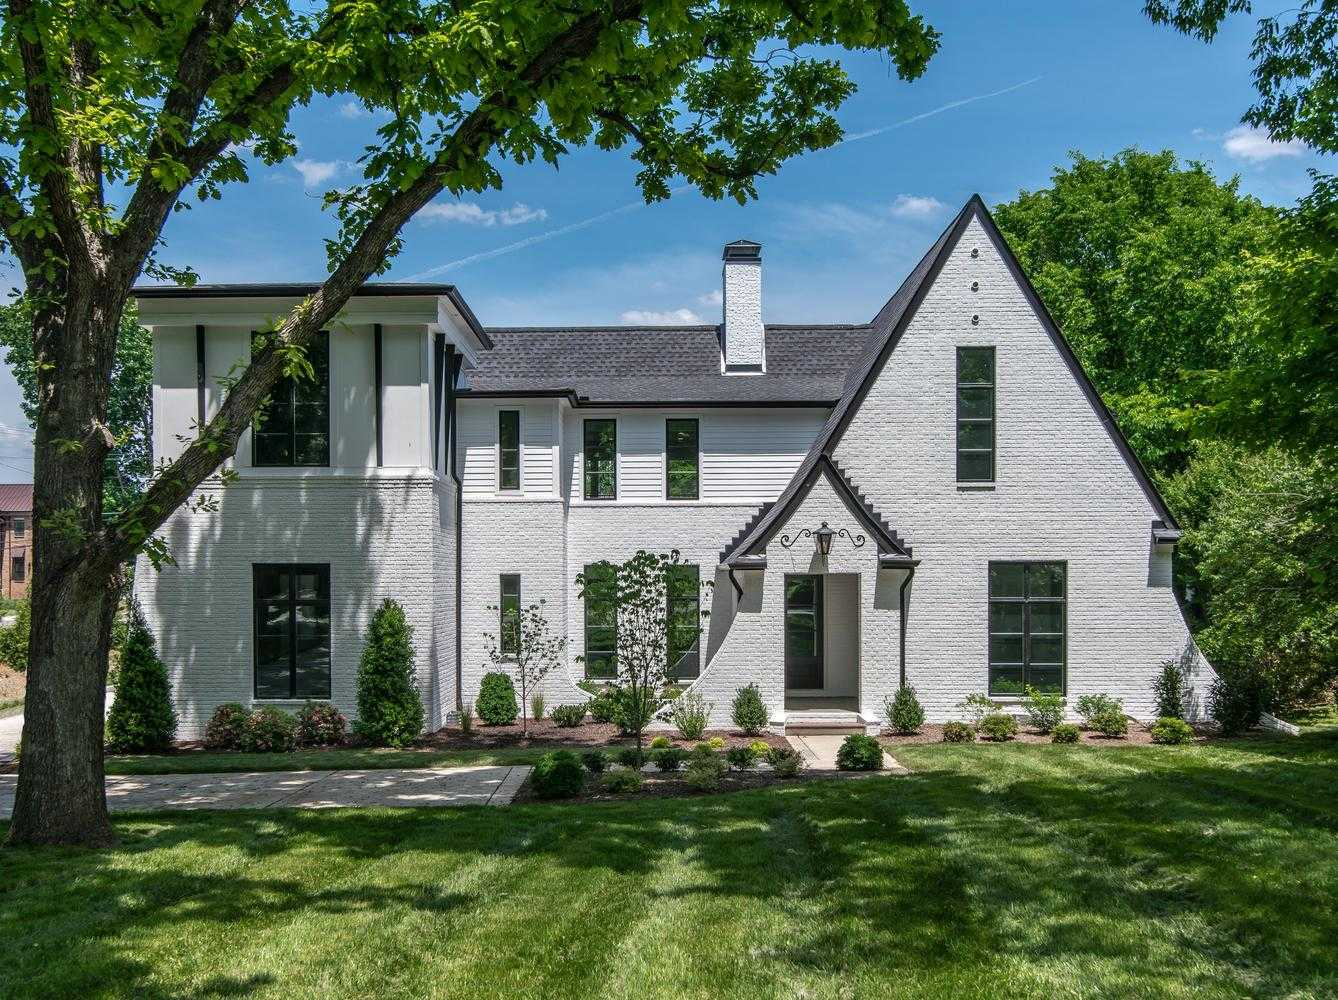 $1,725,000 - 5Br/6Ba -  for Sale in Highlands Of Belle Meade, Nashville